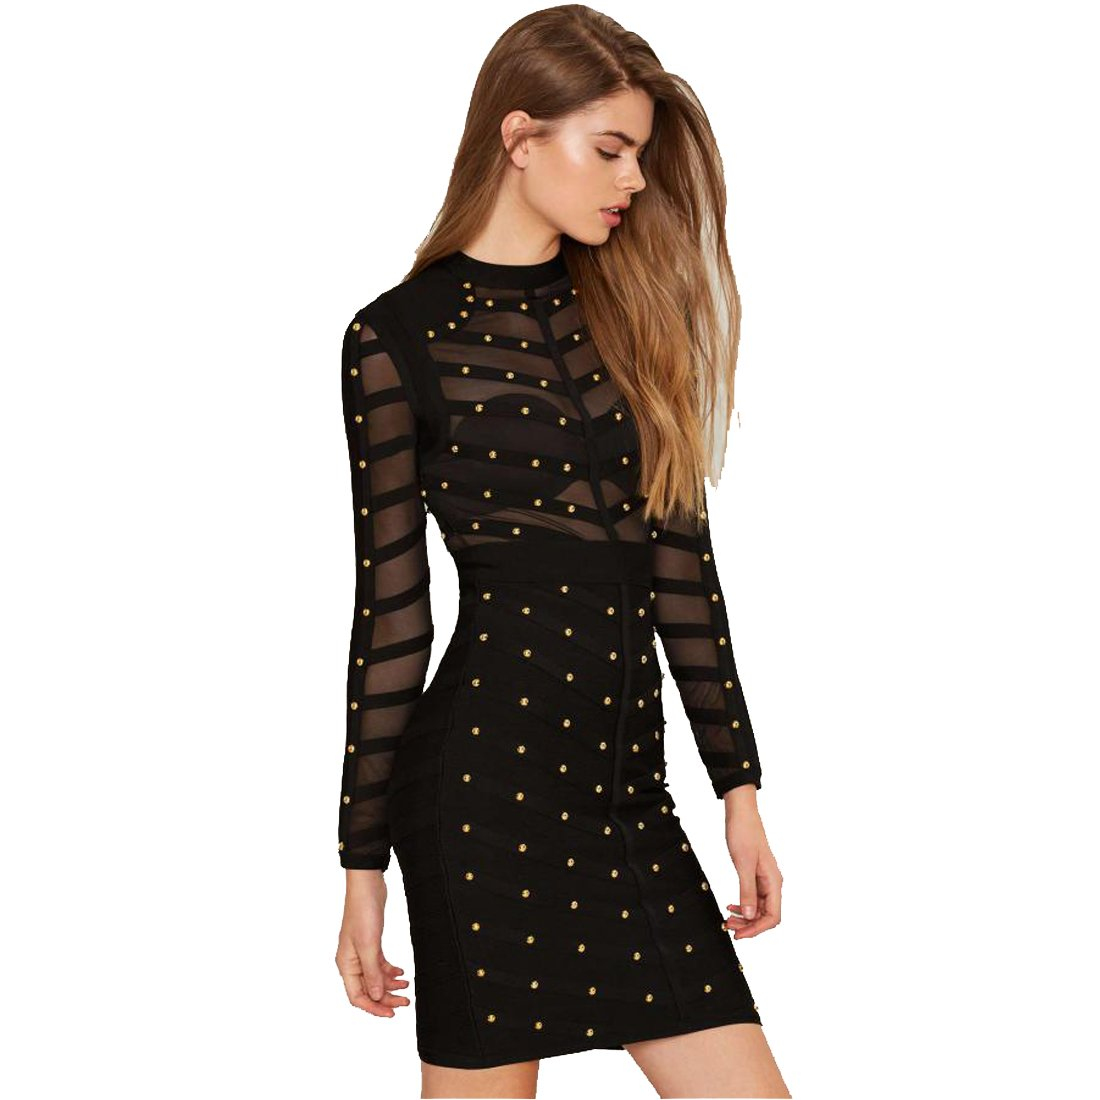 18c353bd27 Top1: HLBCBG Women's Rivets Studded Mesh Long Sleeve Club Bandage Dress 2268